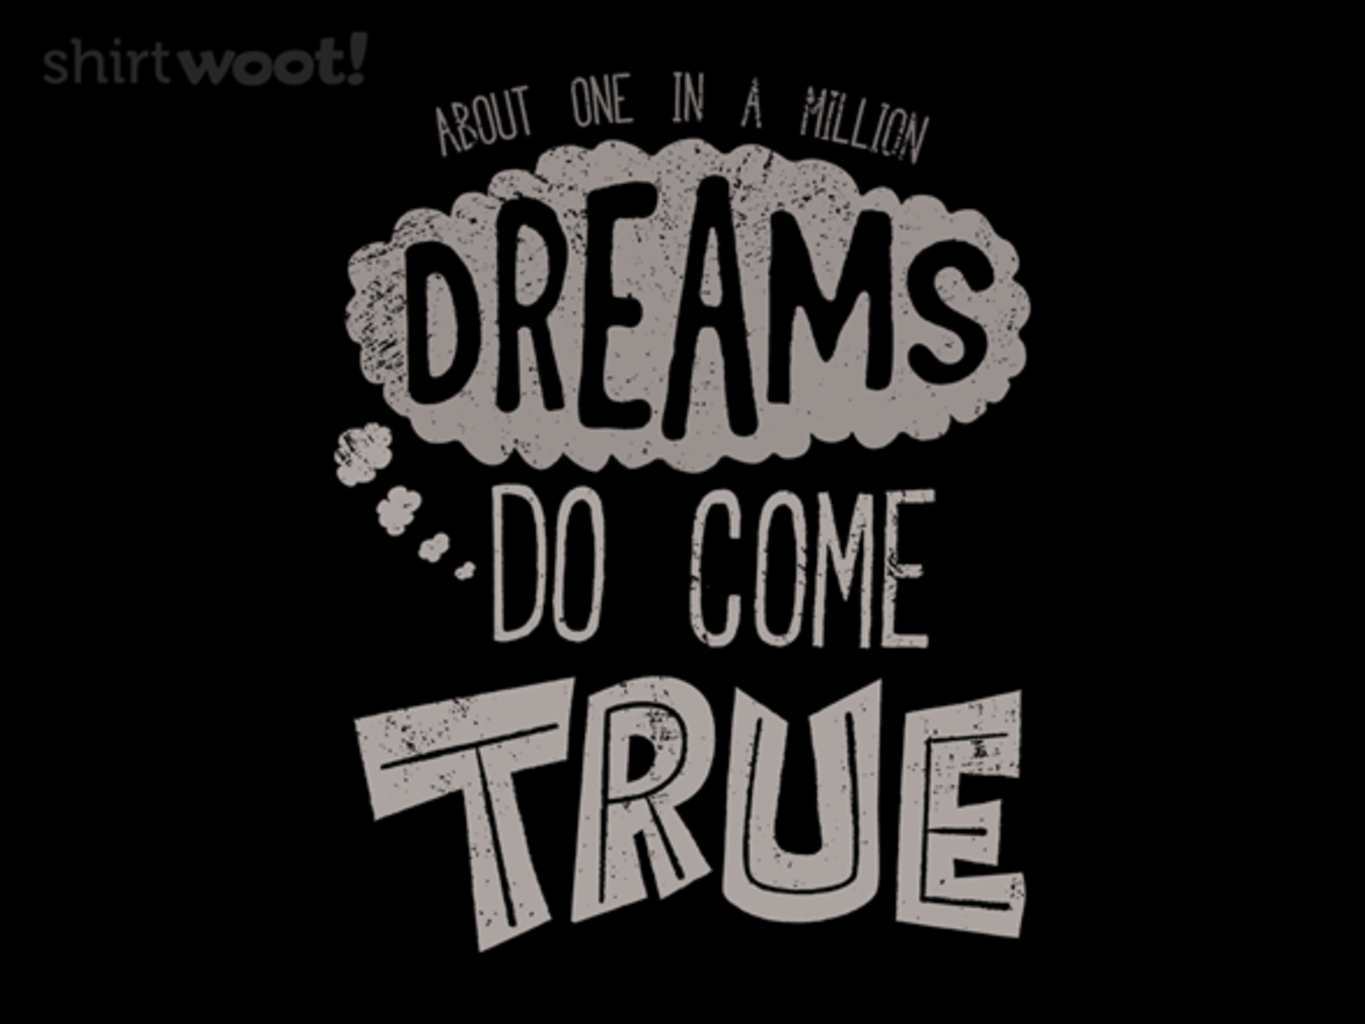 Woot!: Dreamers - $8.00 + $5 standard shipping